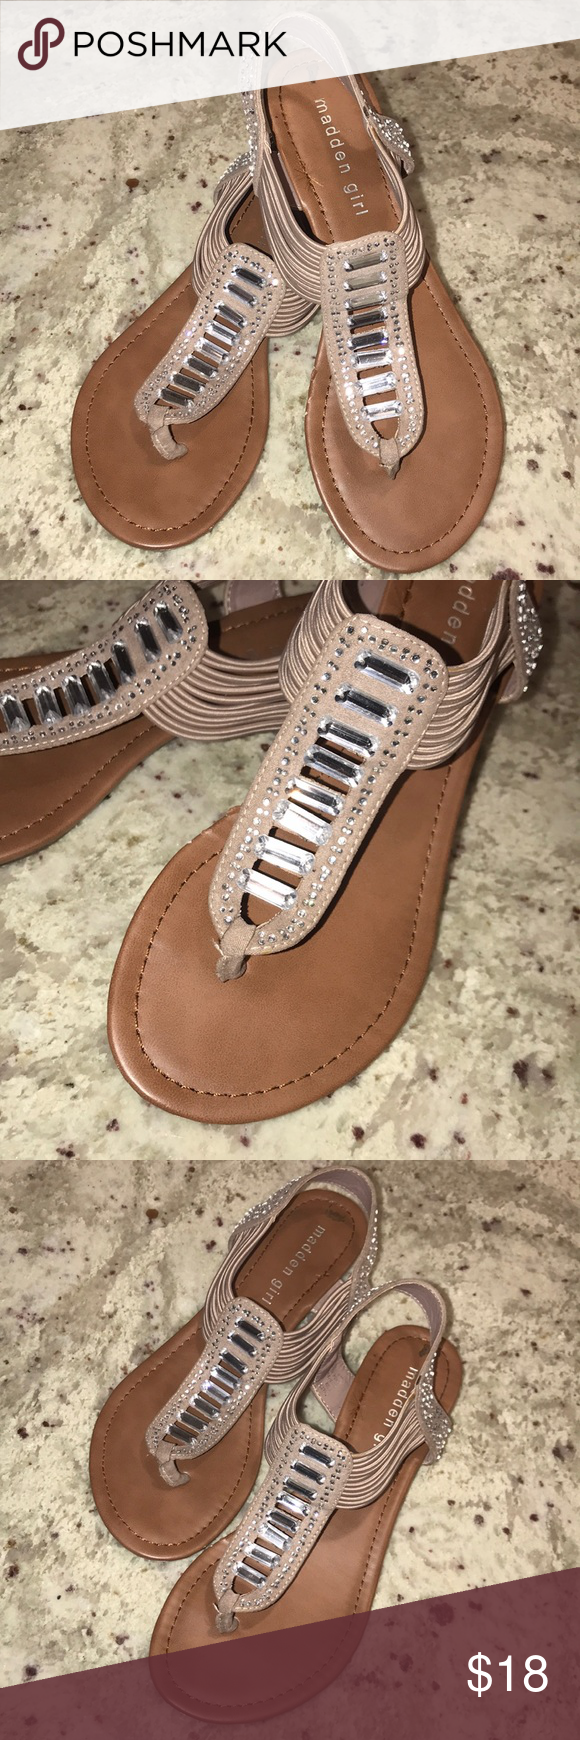 """6e9373f48efcc Madden Girl✨Bling Thong Sandal """"Tilliee"""" Sandal. Size 6.5. Bling and  rhinestone accents in very good condition. Madden Girl Shoes Sandals"""